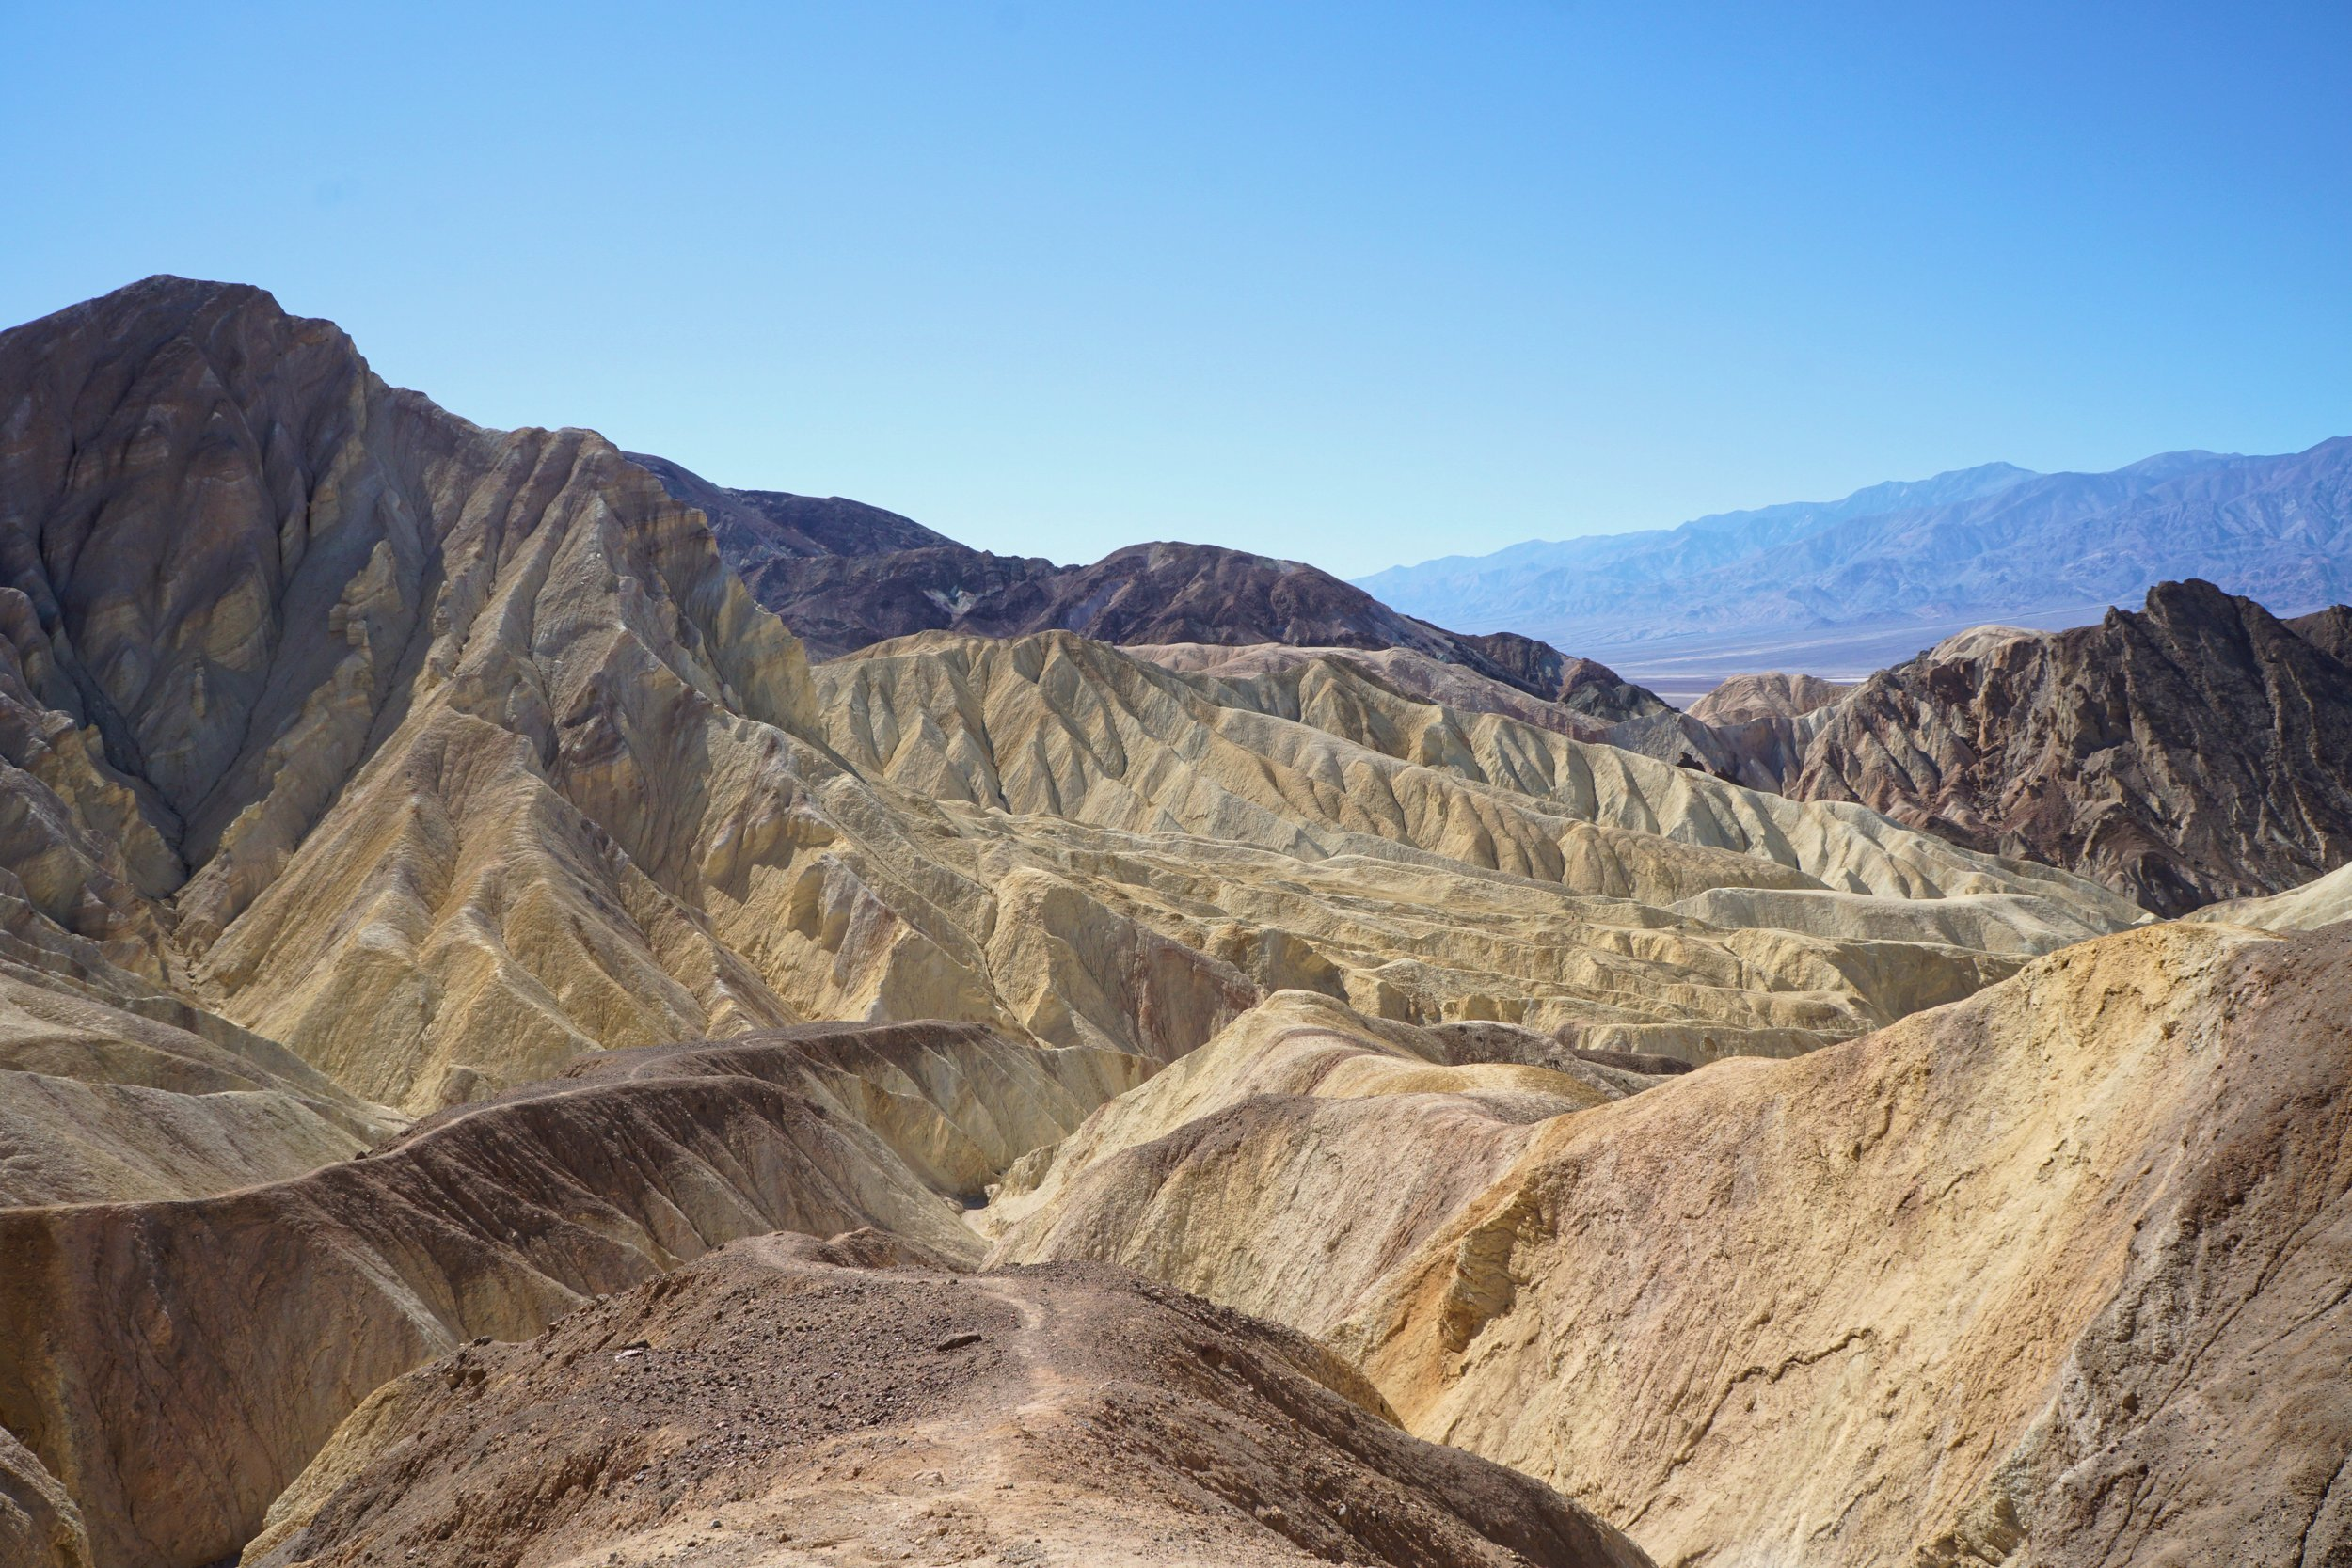 The Golden Canyon Trail has a similar look to Zabriskie point in some places.